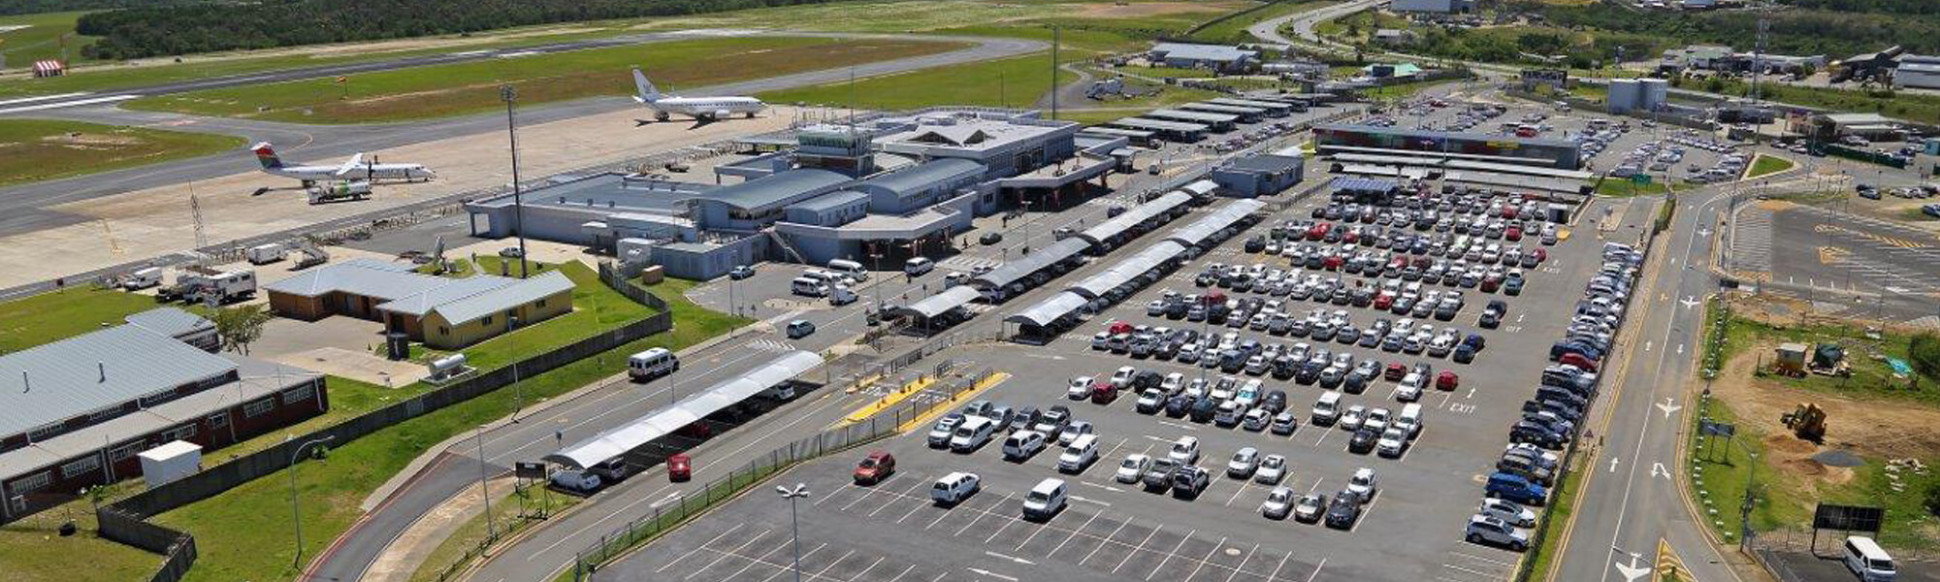 East London Long Stay Parking | SA Airports Or Tambo Carport Parking